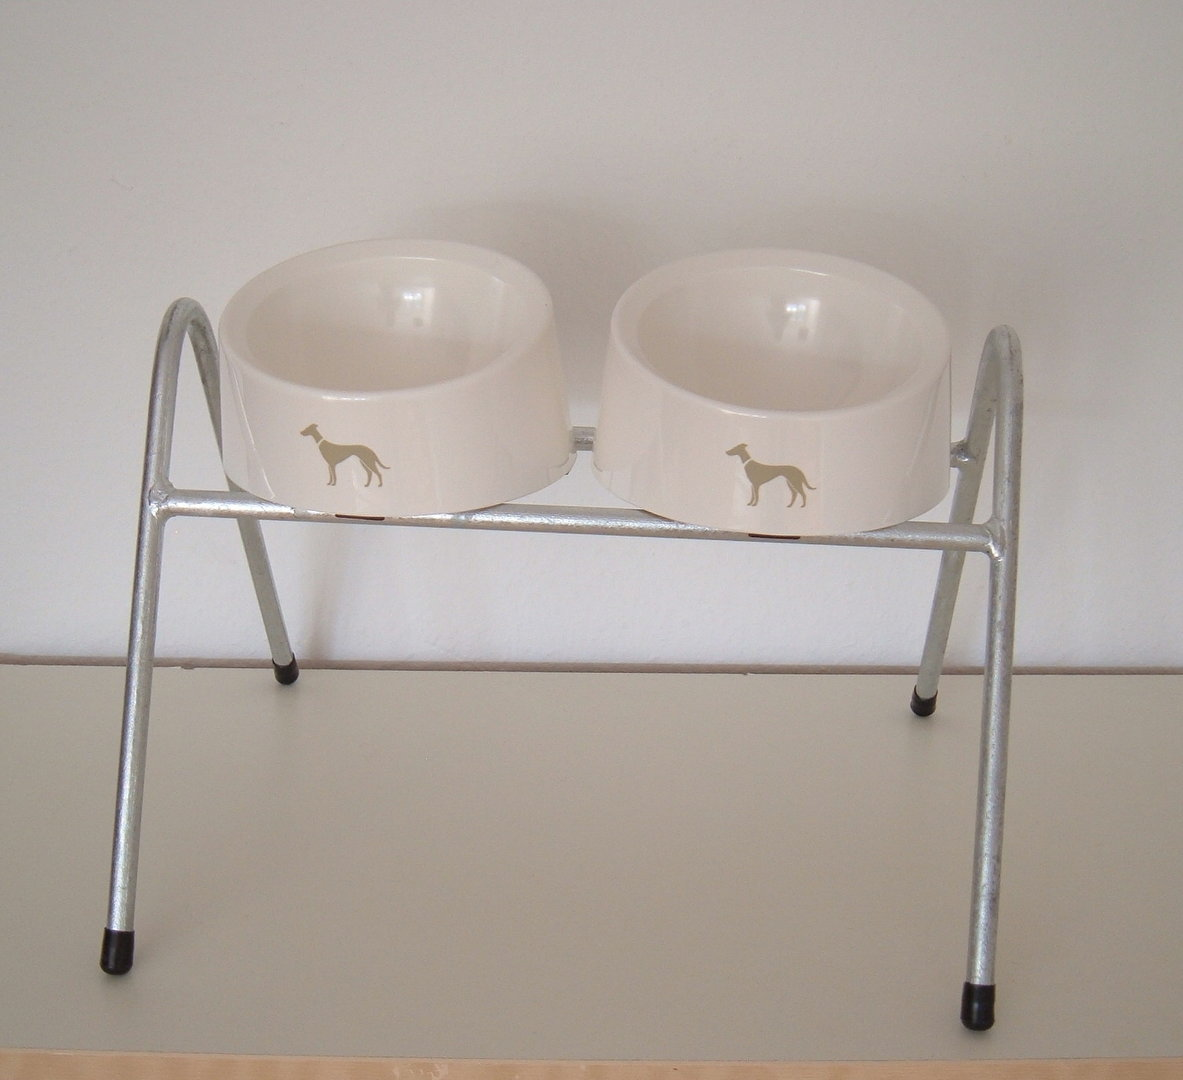 Feedable hot galvanized for dogs including 2 Hunter Melamin Bowls for medium sized dogs